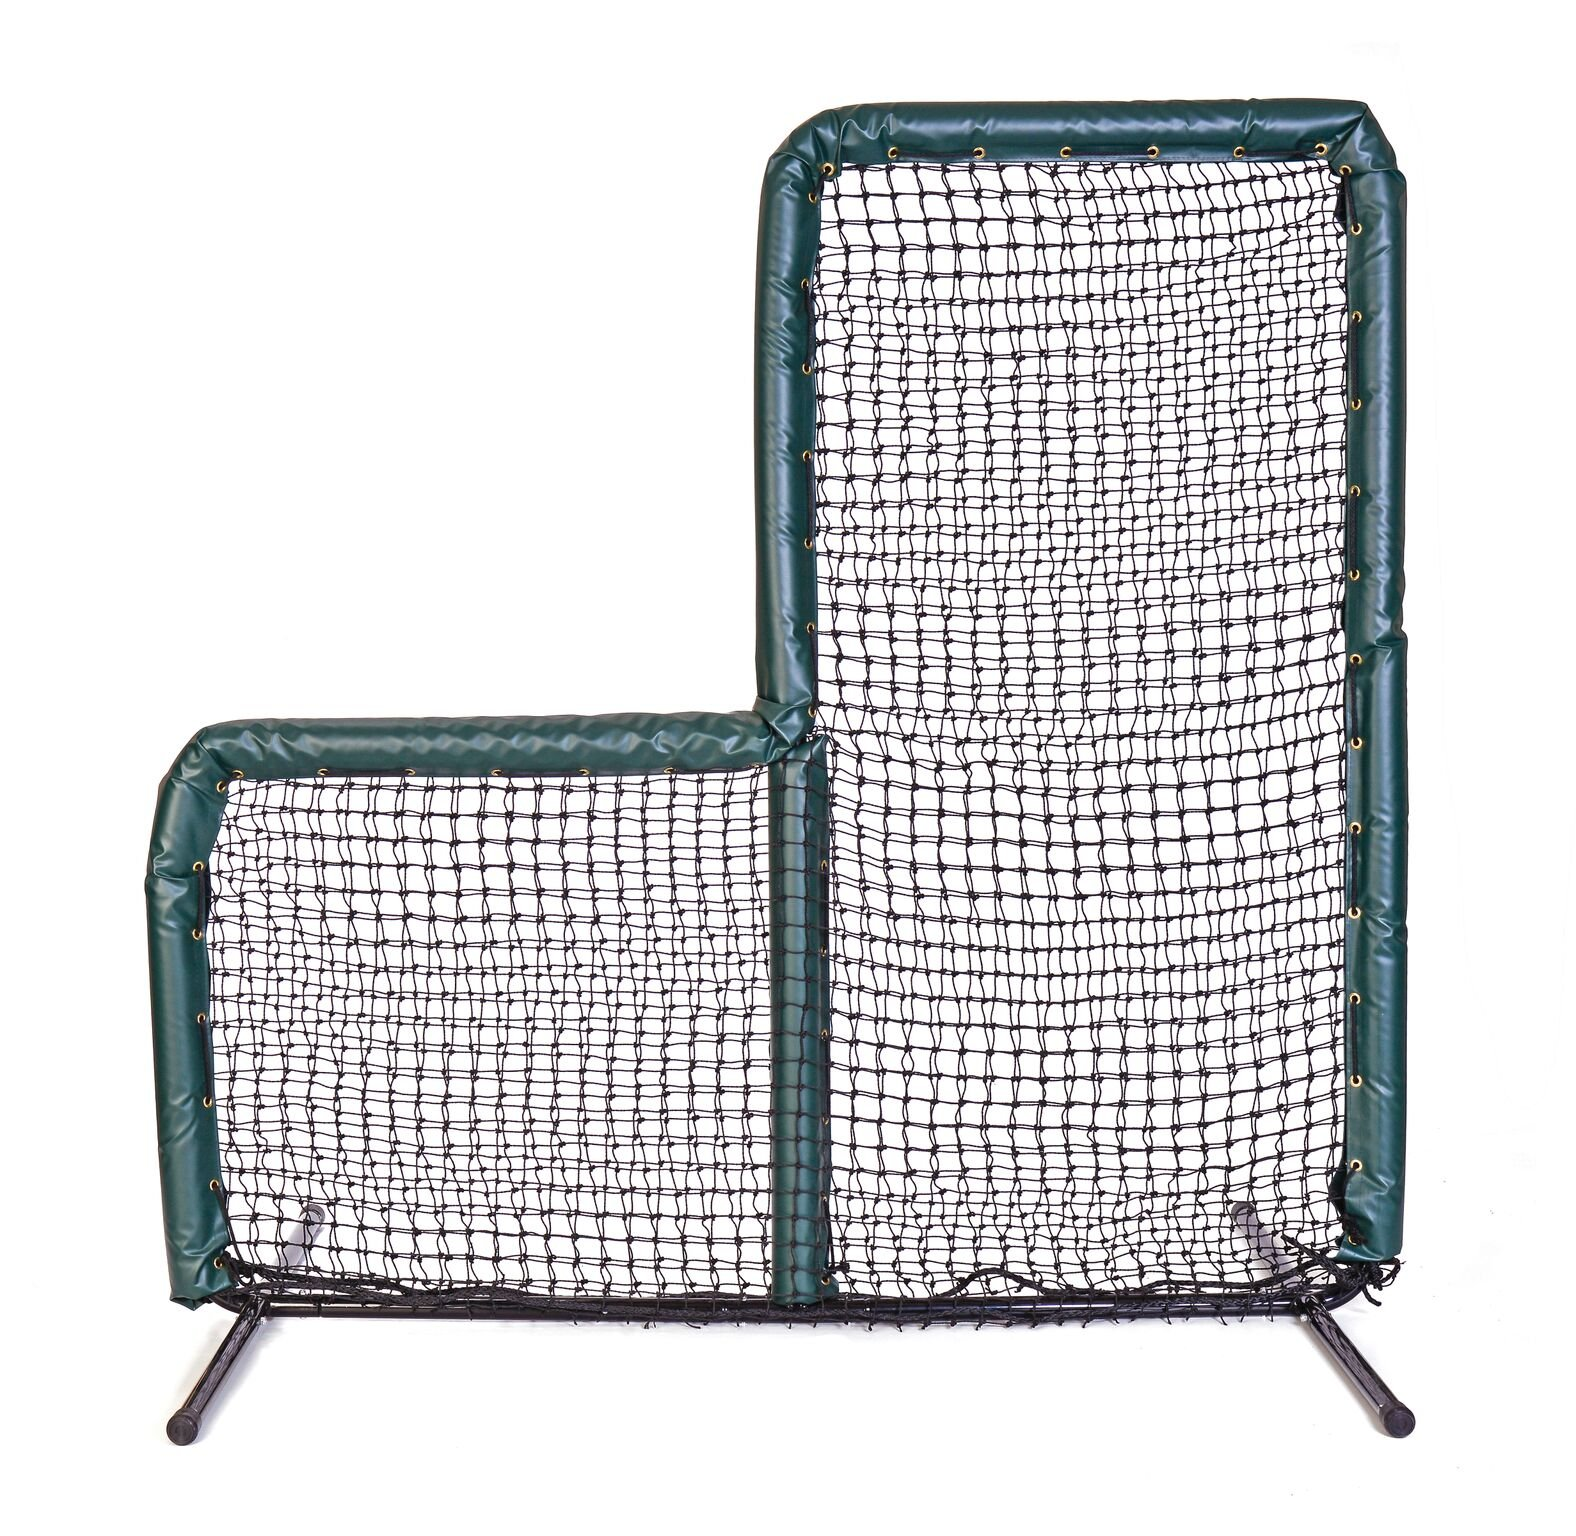 Armor Series Pitching Screen Baseball Softball Practice Net with Screen Bulletz Leg Caps. 7x7 L-Screen Perfect for Baseball and Softball Batting Practice. Choose Padding Color. (Green) by Armor